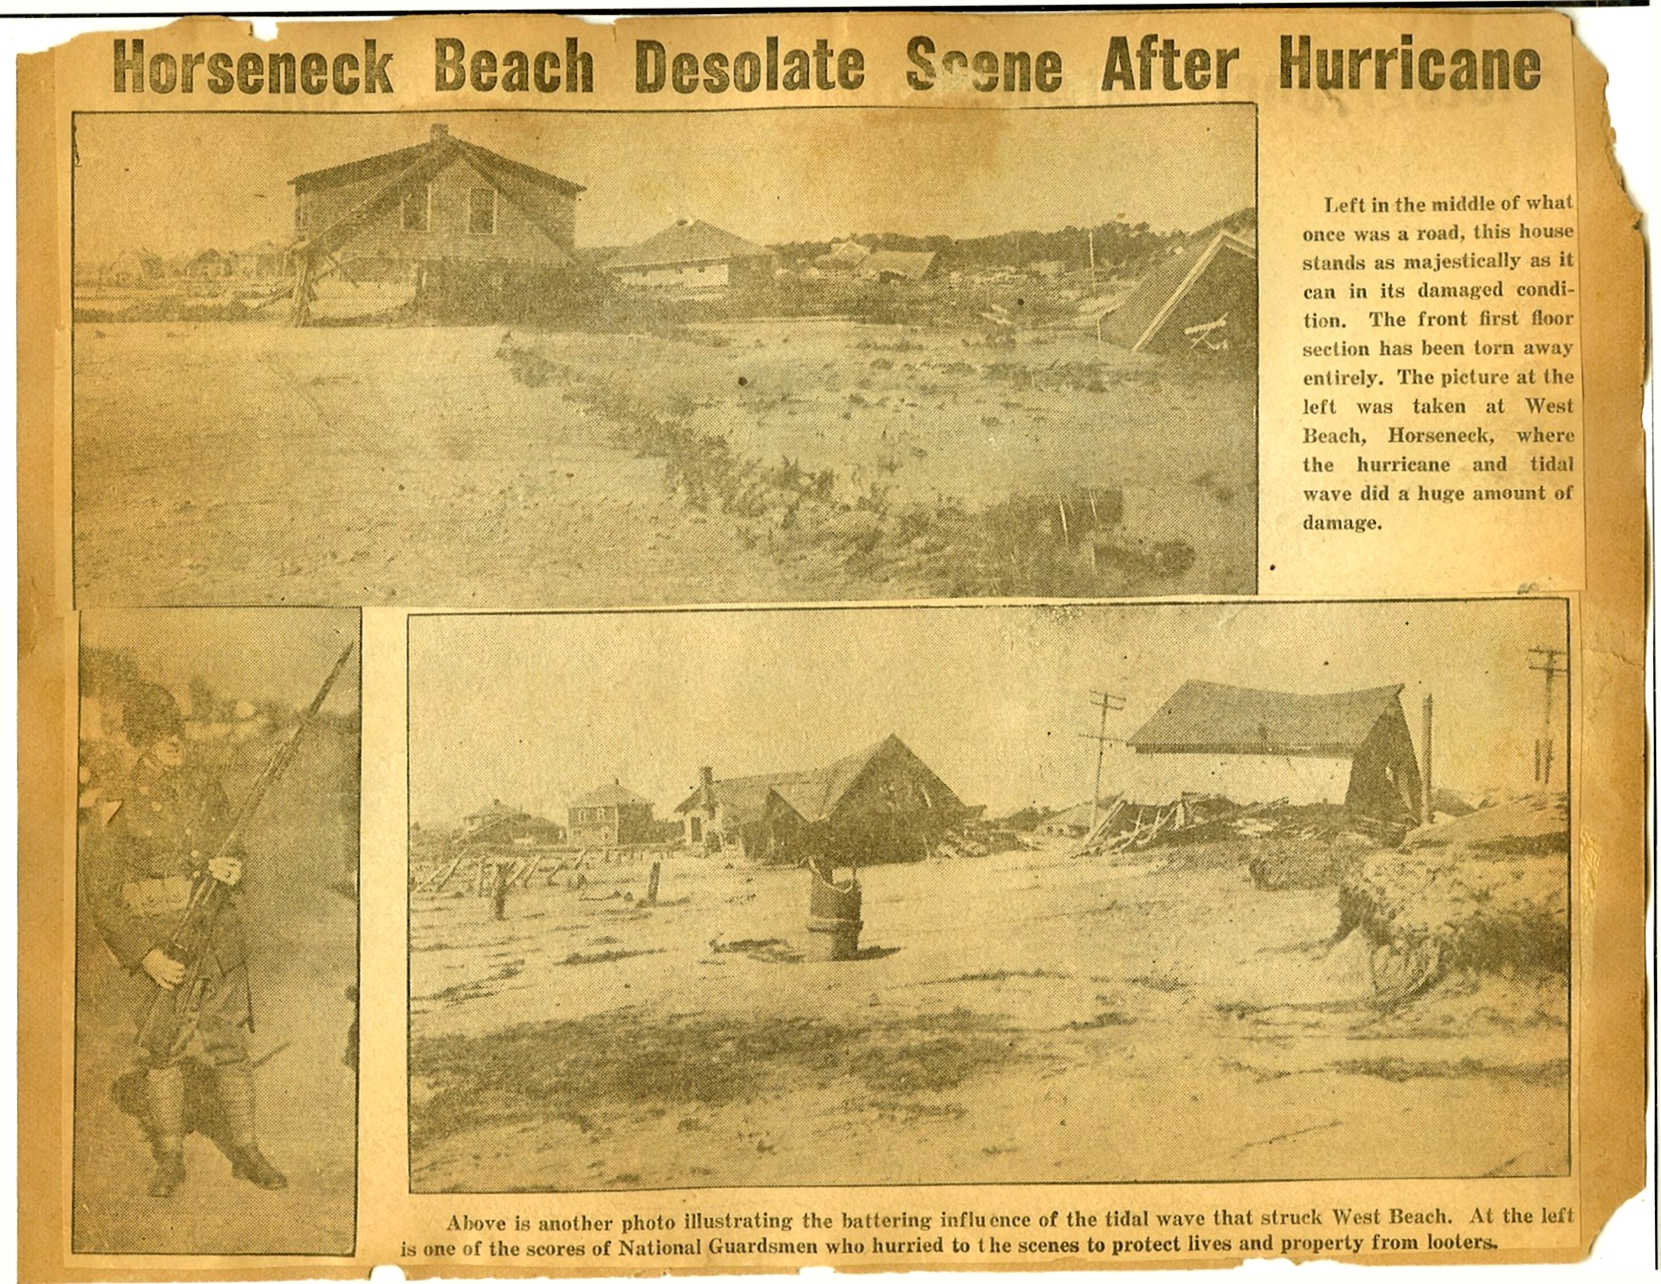 The 1938 Hurricane photos p30